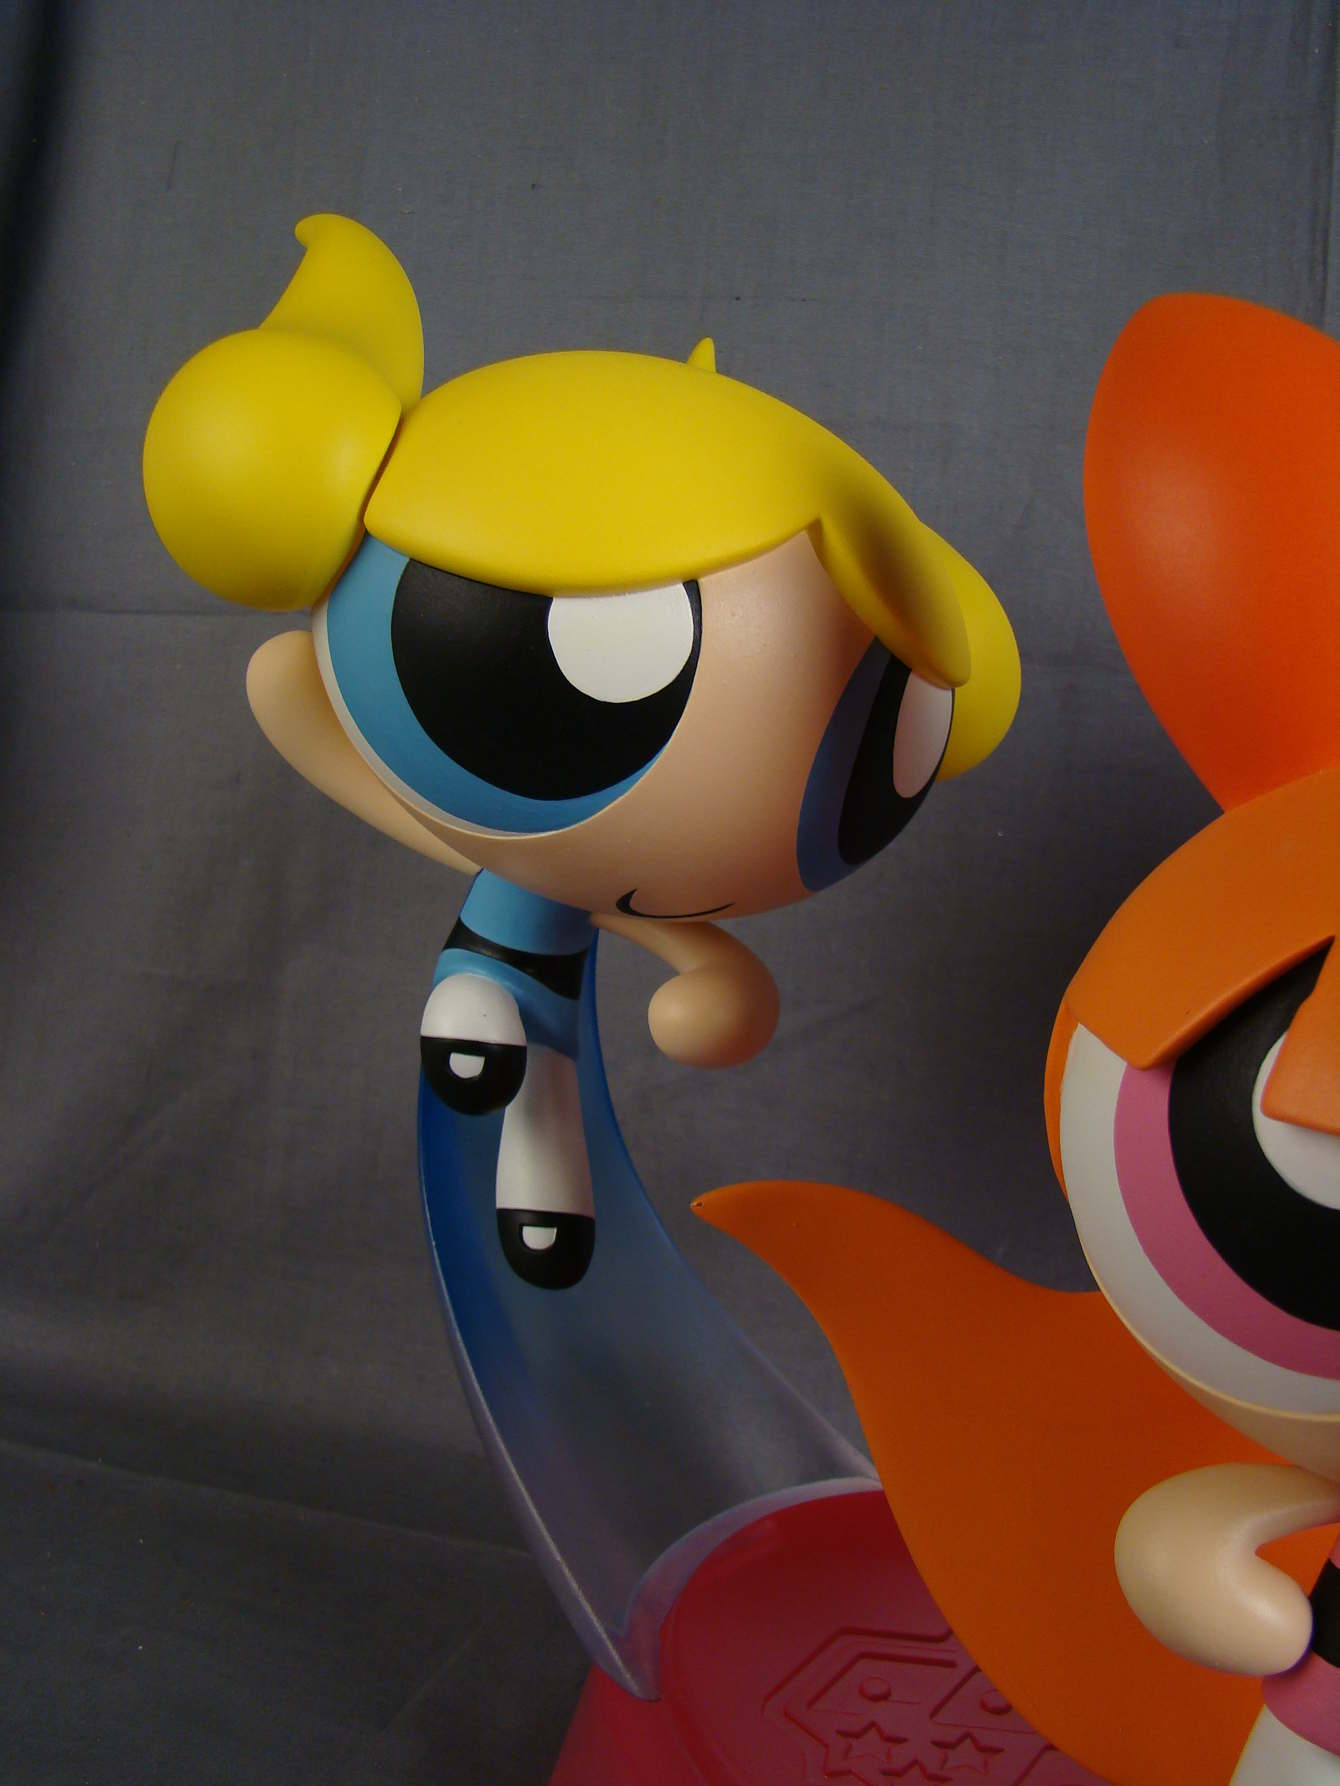 Cartoon-Network-Powerpuff-Girls-DSC06701_1340_c.JPG